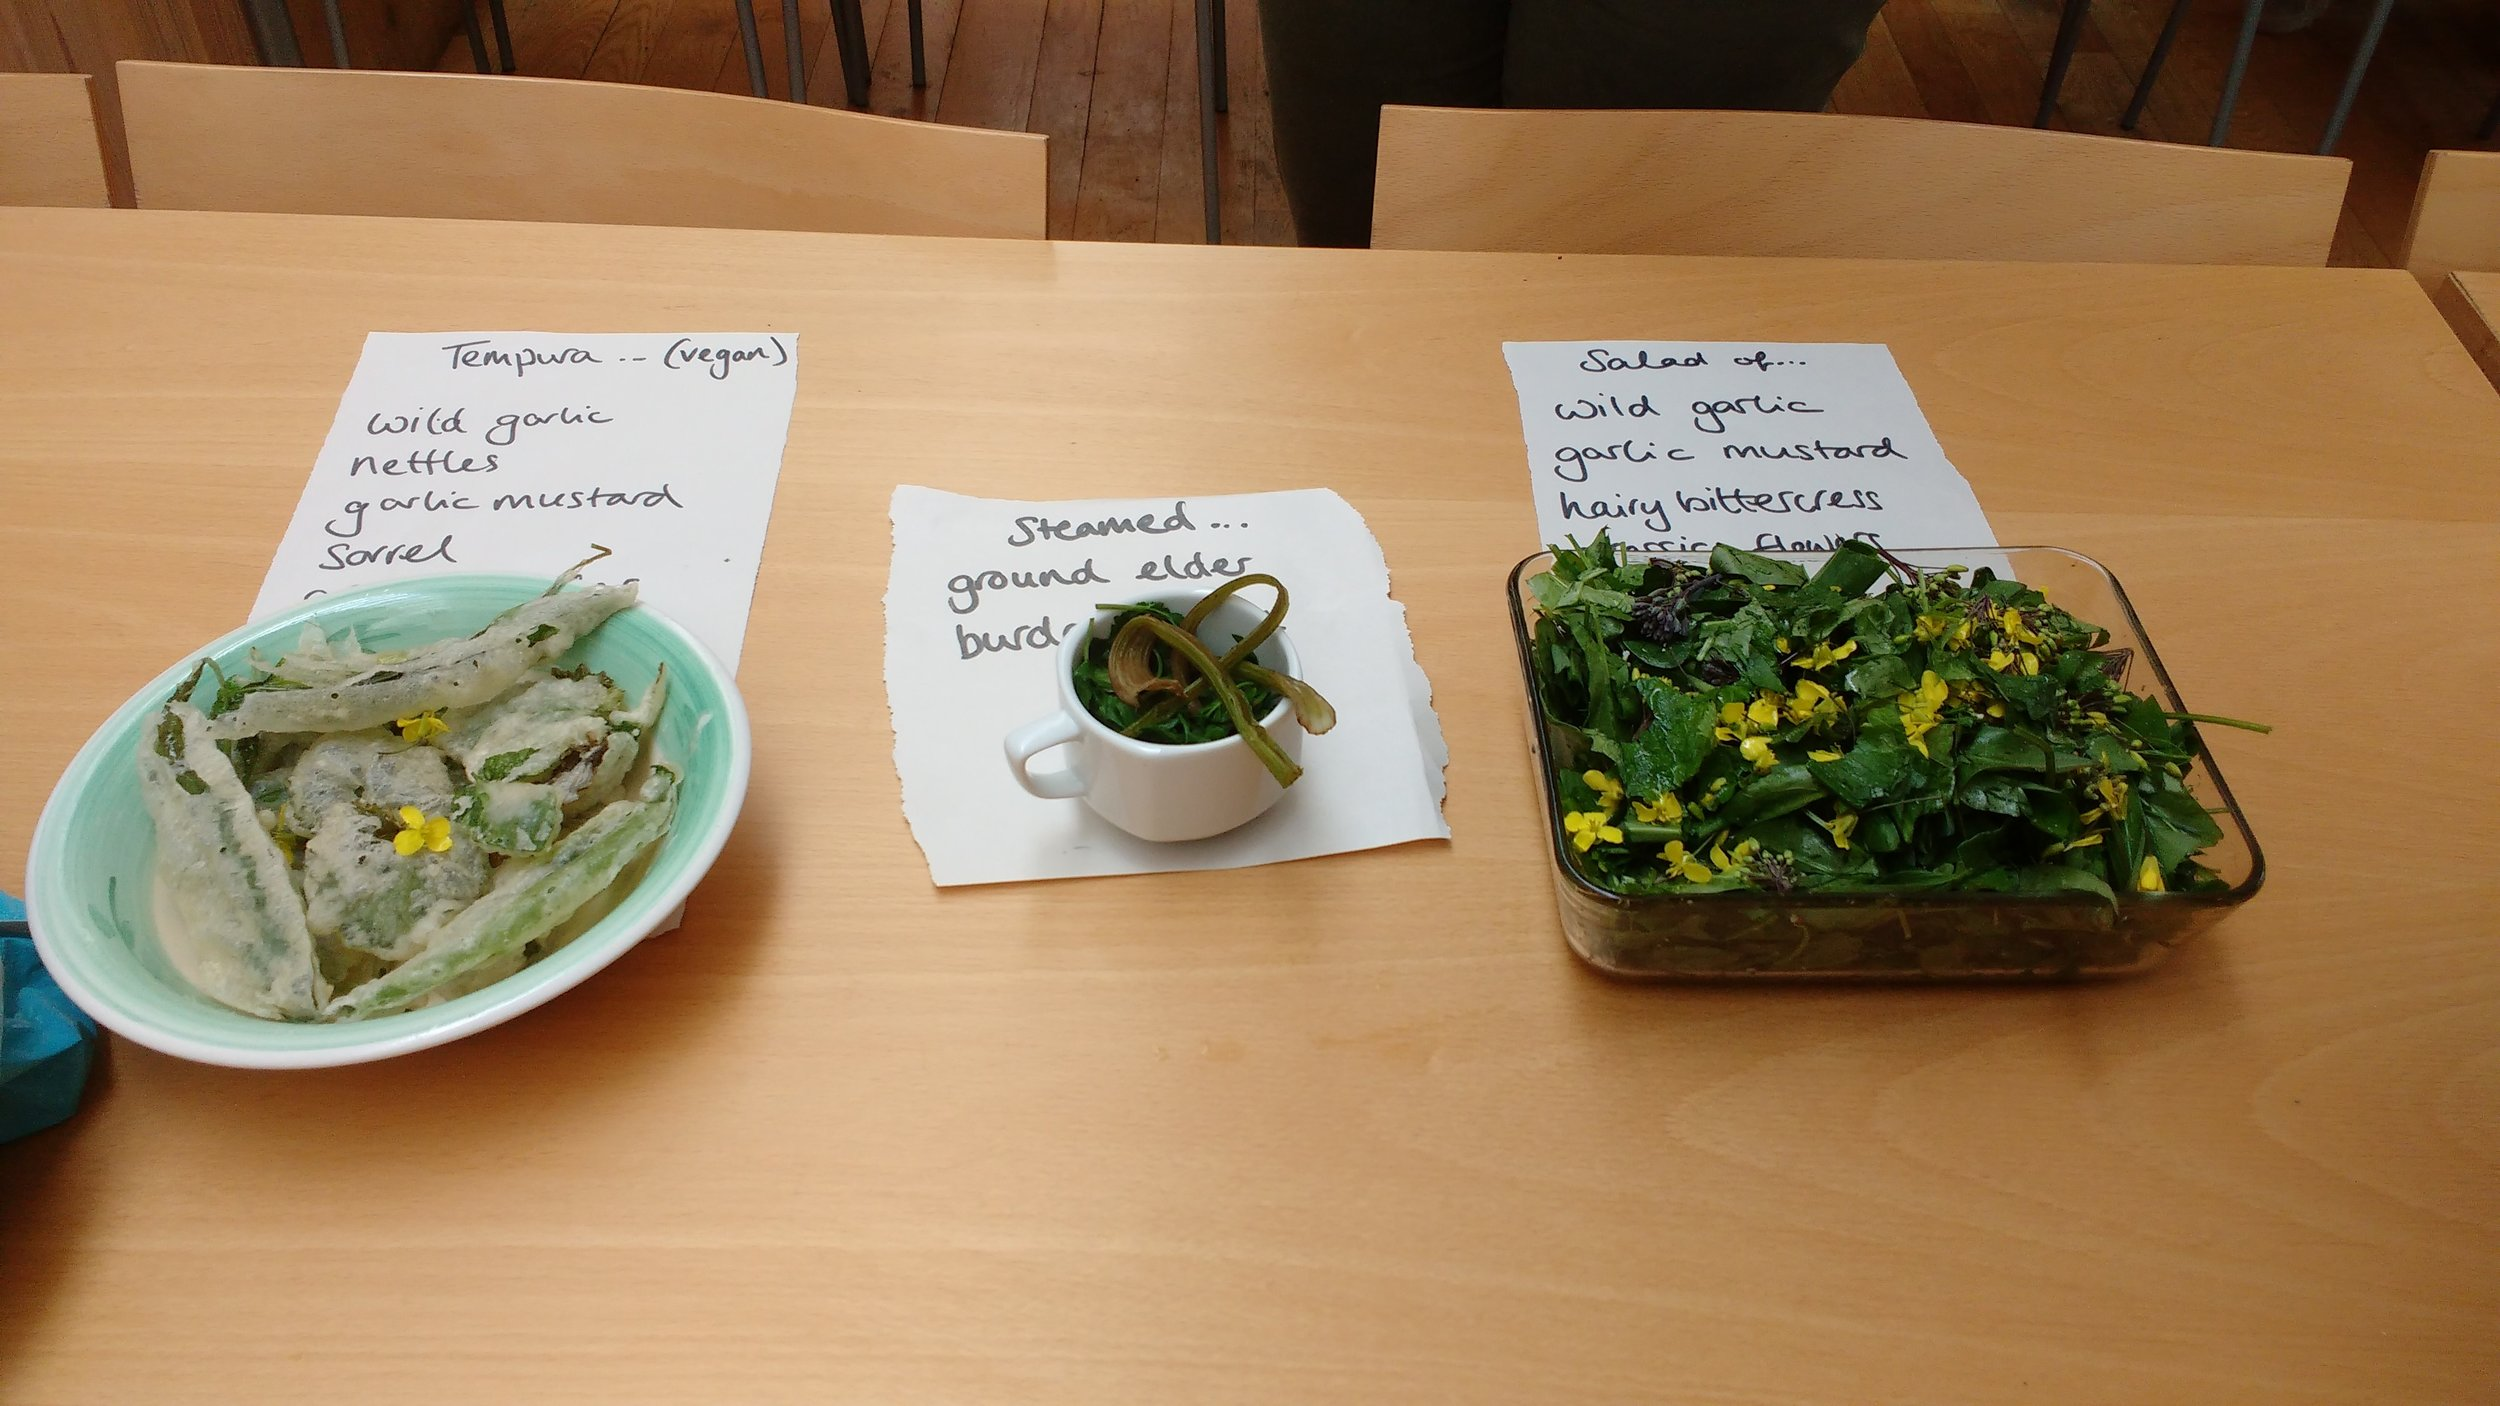 Wild foods prepared as tempura, steamed greens and salads